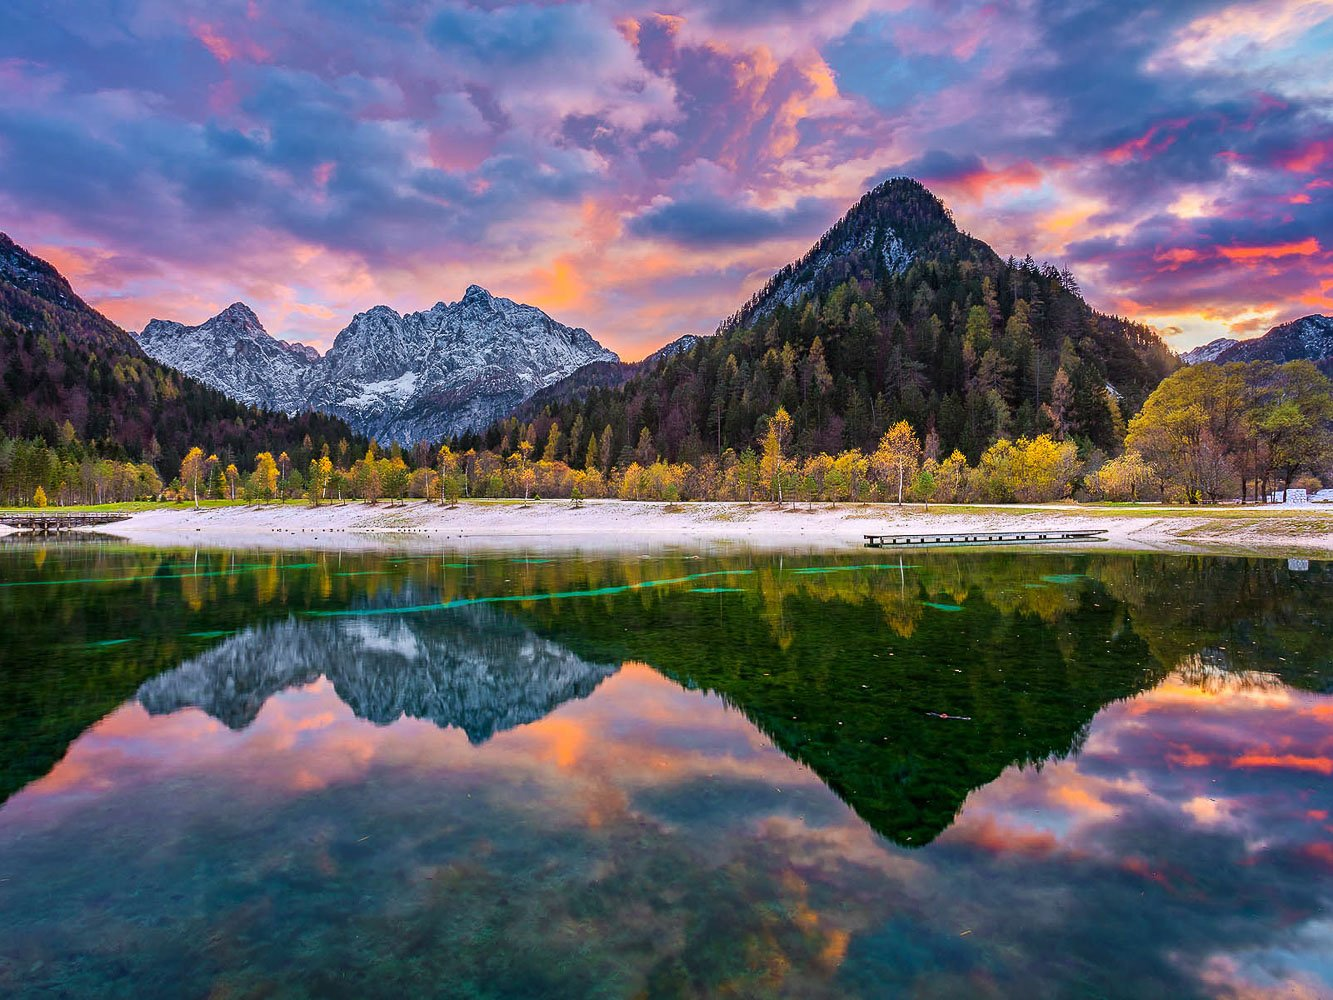 Fantastic colorful caption of autumn nature with mountains and sunset skies mirroring in the Lake Jasna on a photography day trip near Kranjska Gora.